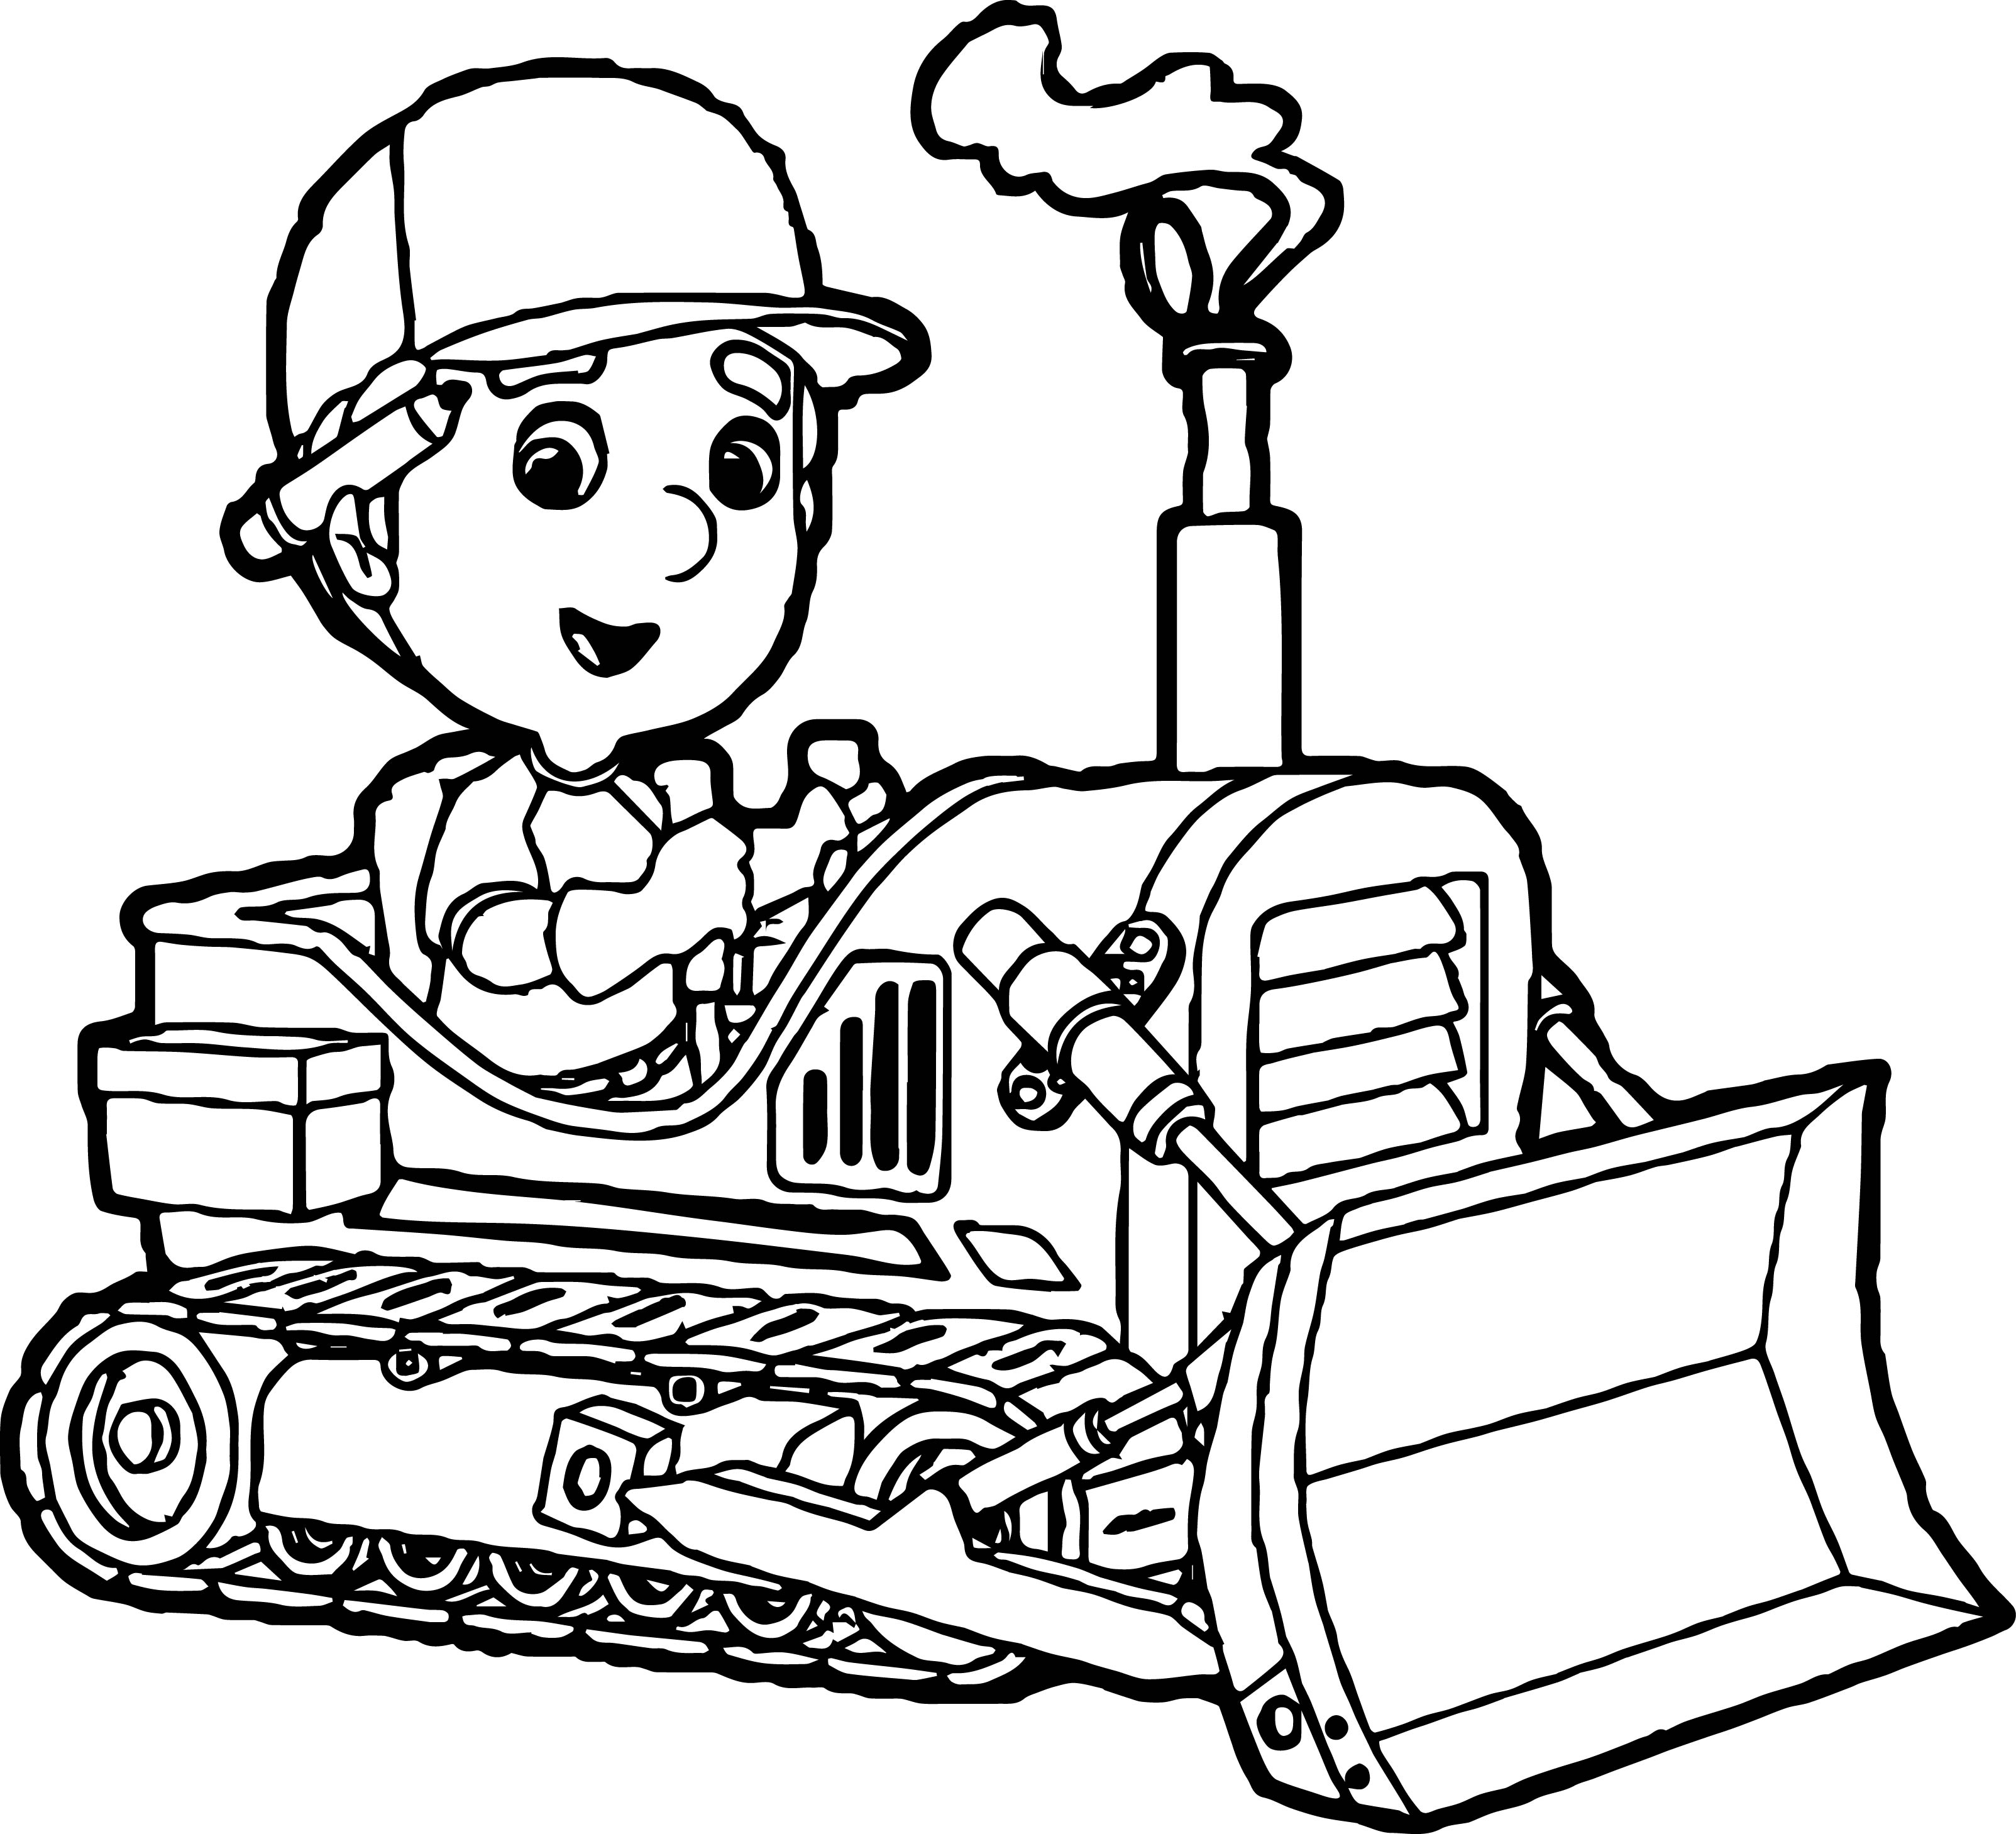 Bulldozer Drawing | Free download on ClipArtMag